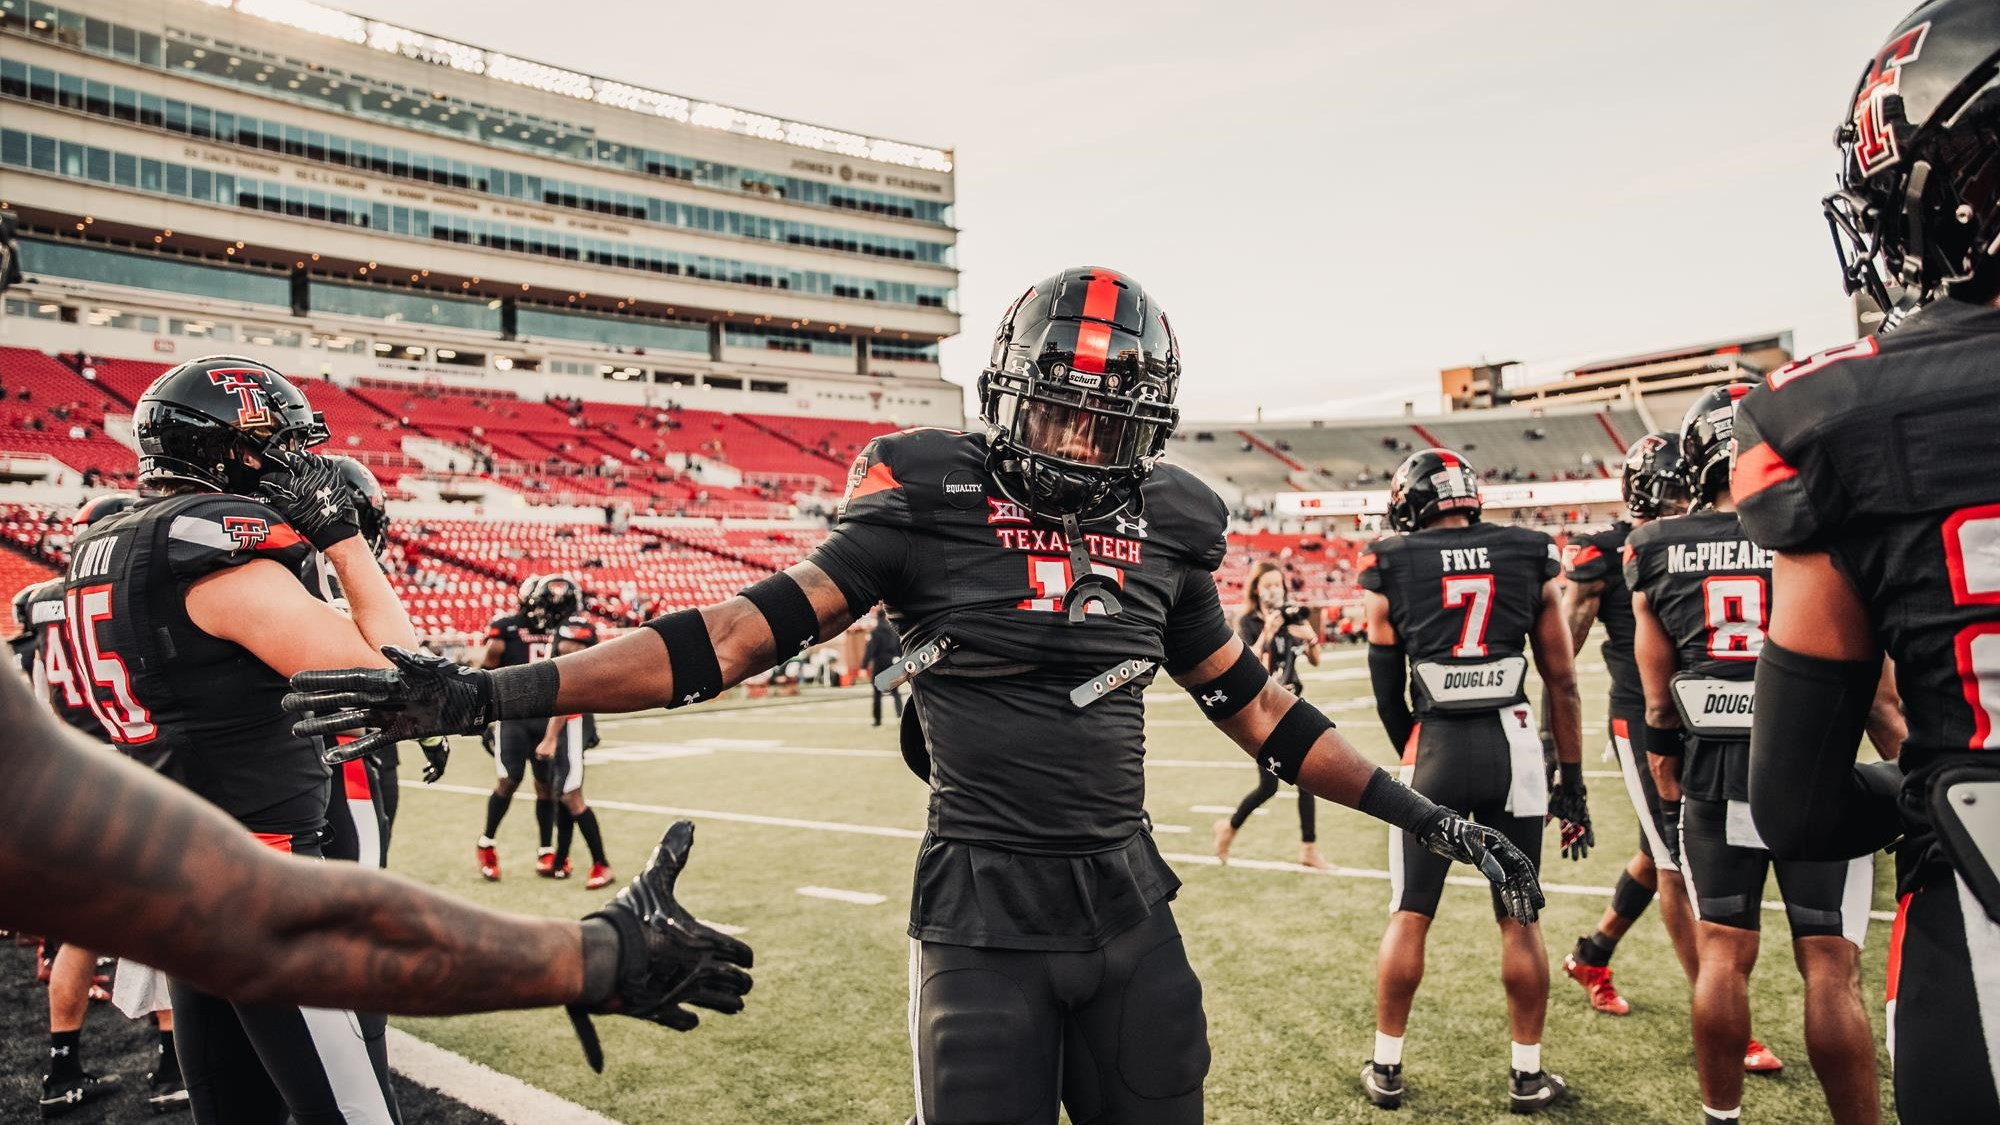 Texas Tech Baylor Set For Afternoon Start In Lubbock Texas Tech Red Raiders